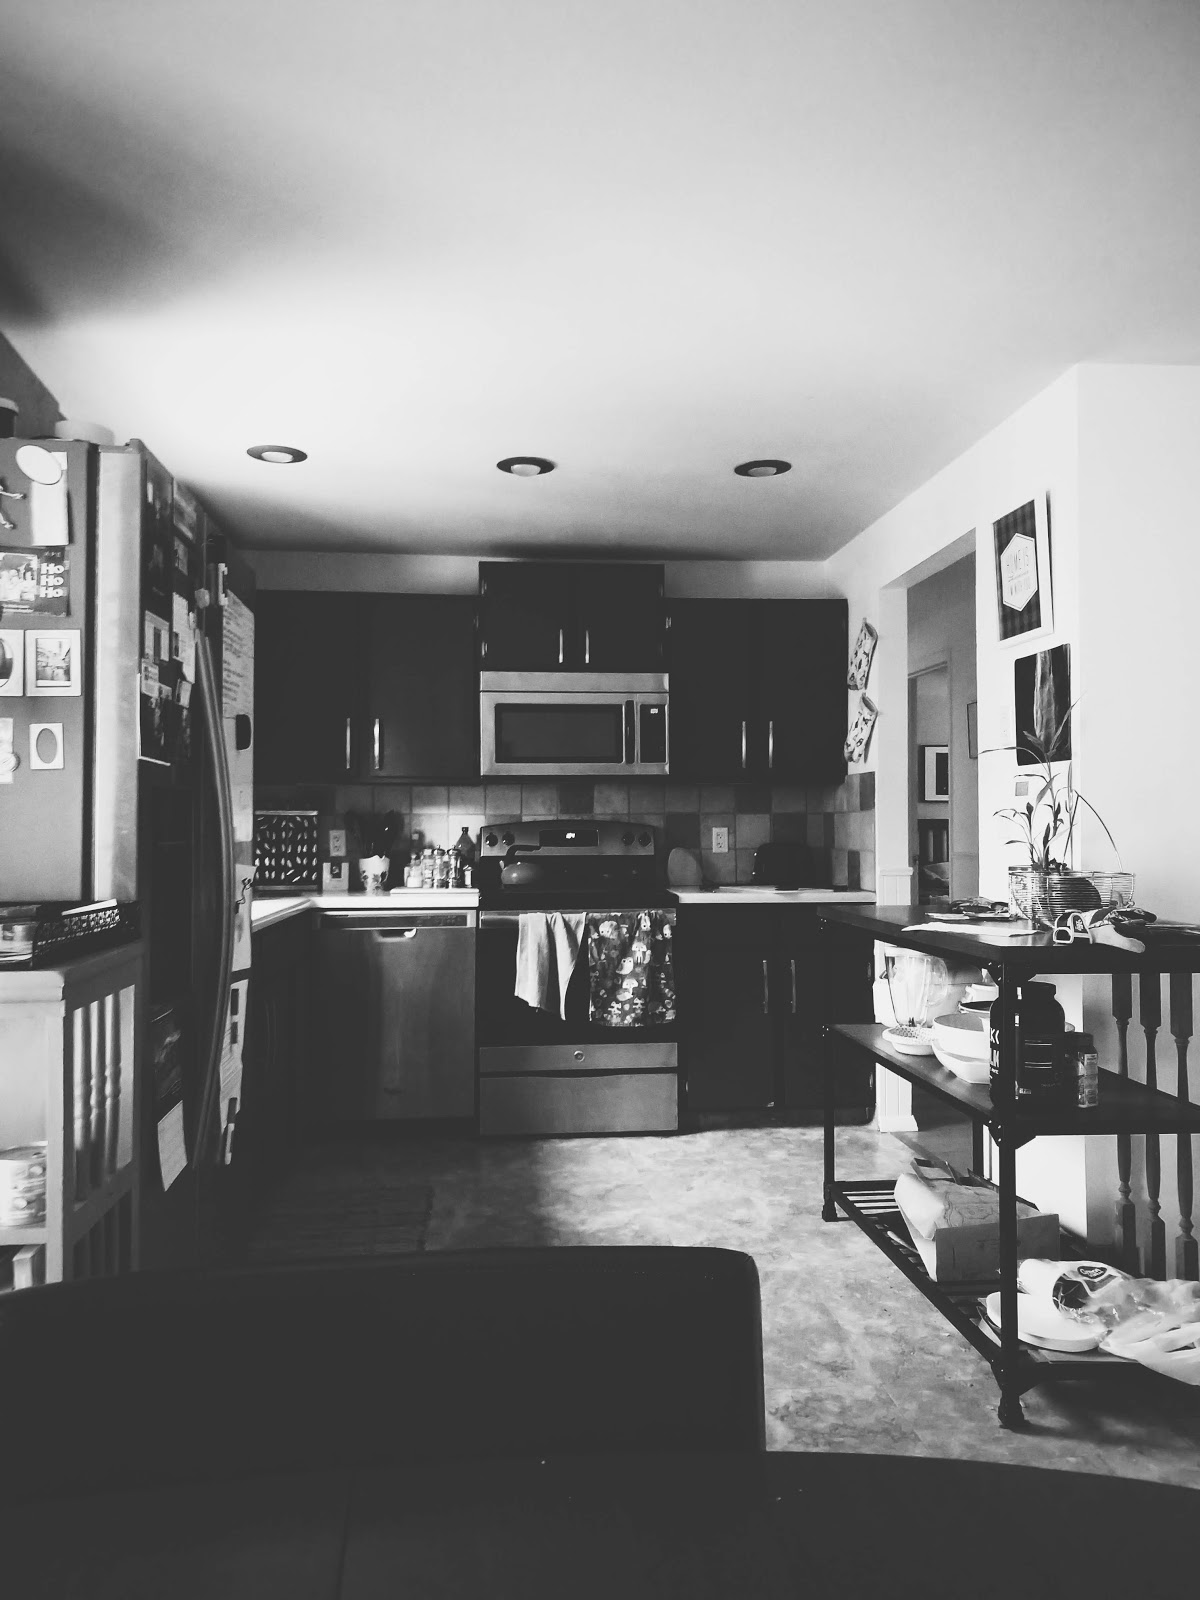 kitchen // life in black & white series // www.thejoyblog.net